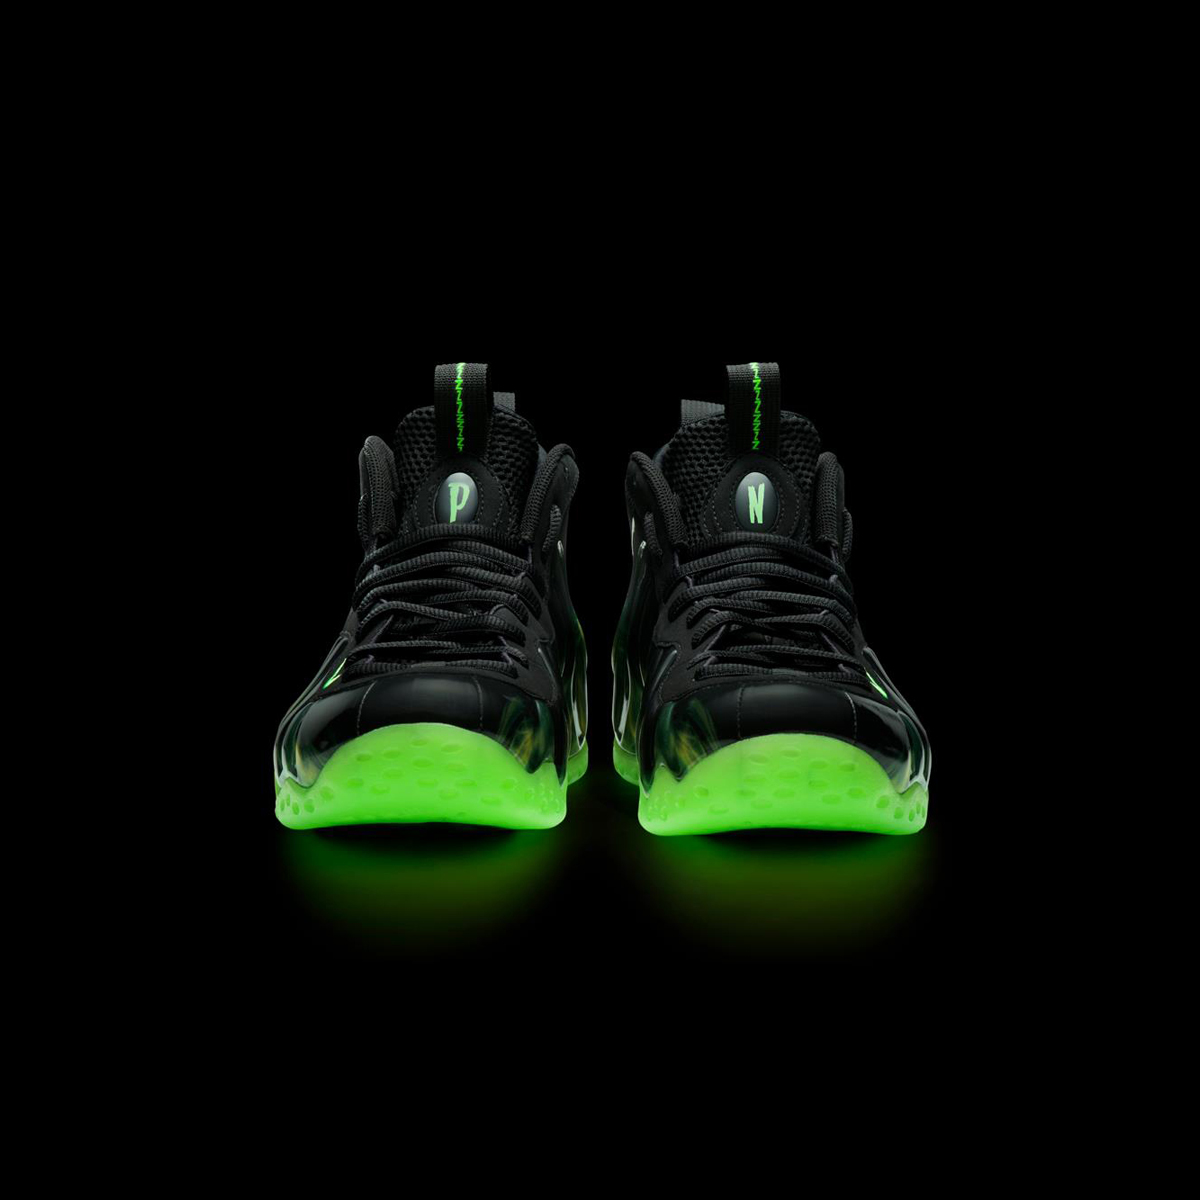 7a02af11eb4 01 mike giepert paranorman foamposites.jpg